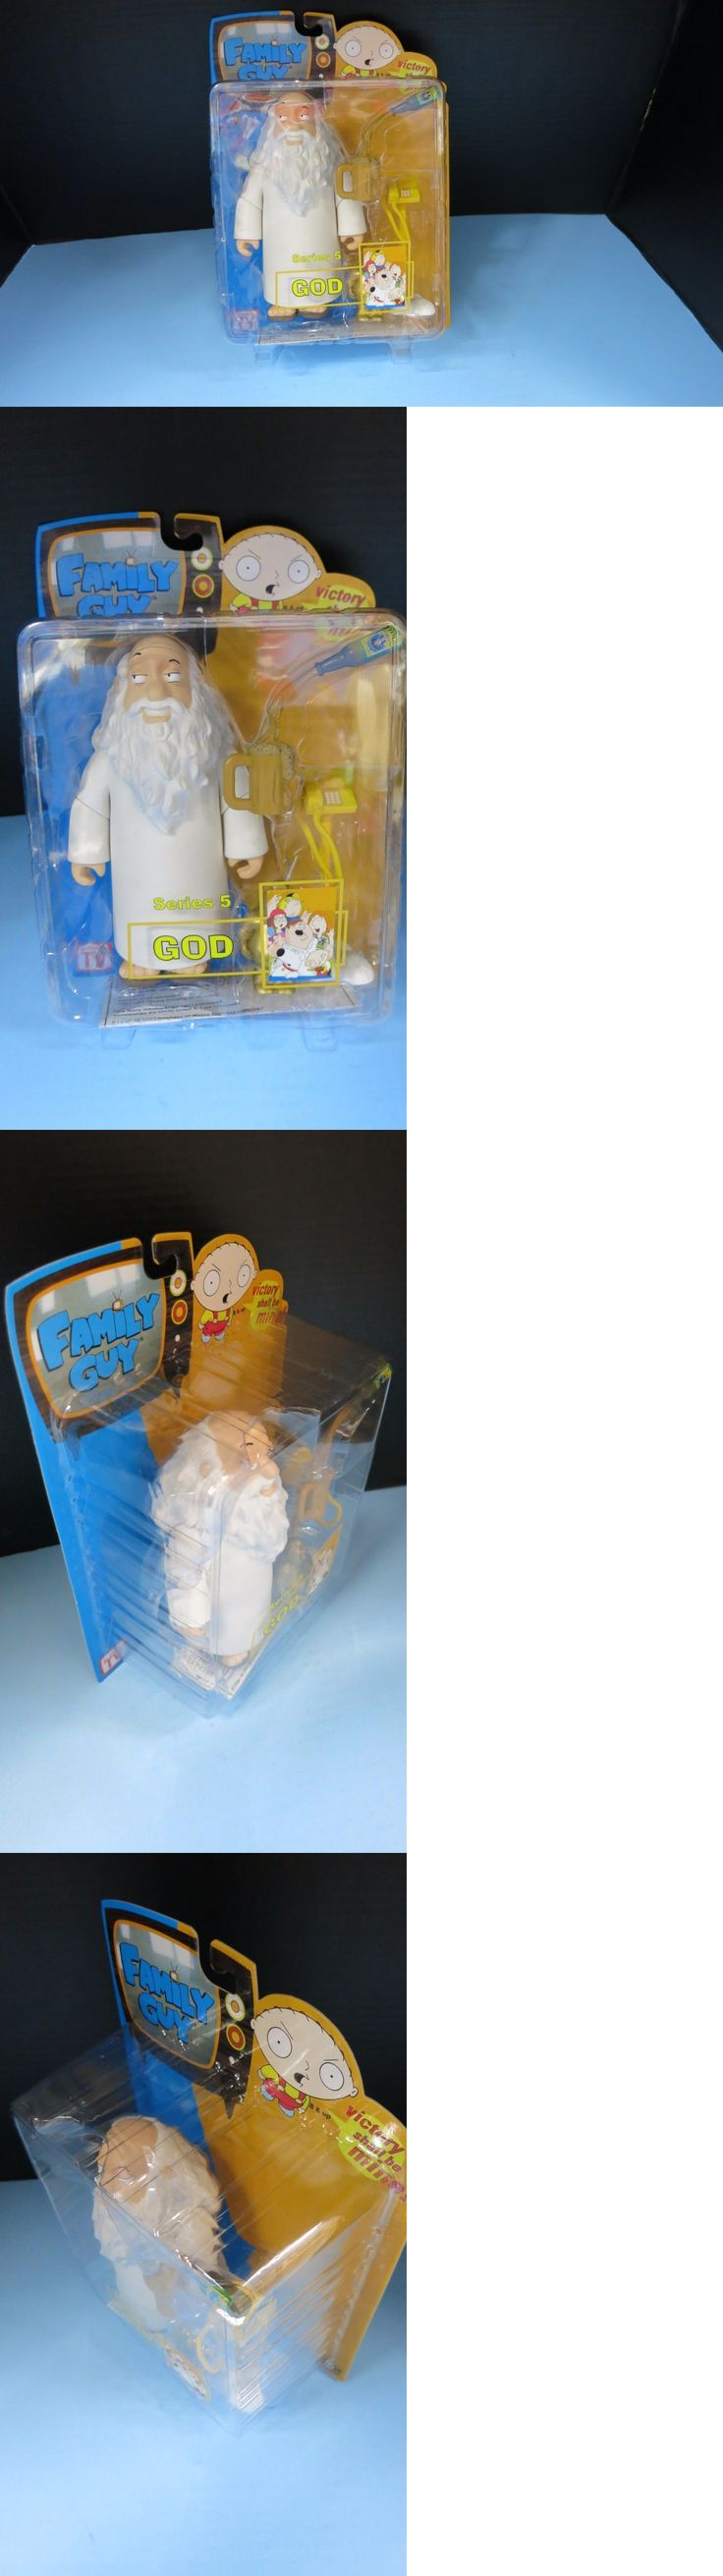 Family Guy 146056: God Family Guy Series 5 Mezco 6 Mib Sealed Peter Miracle Beer Action Figure New -> BUY IT NOW ONLY: $50.99 on eBay!